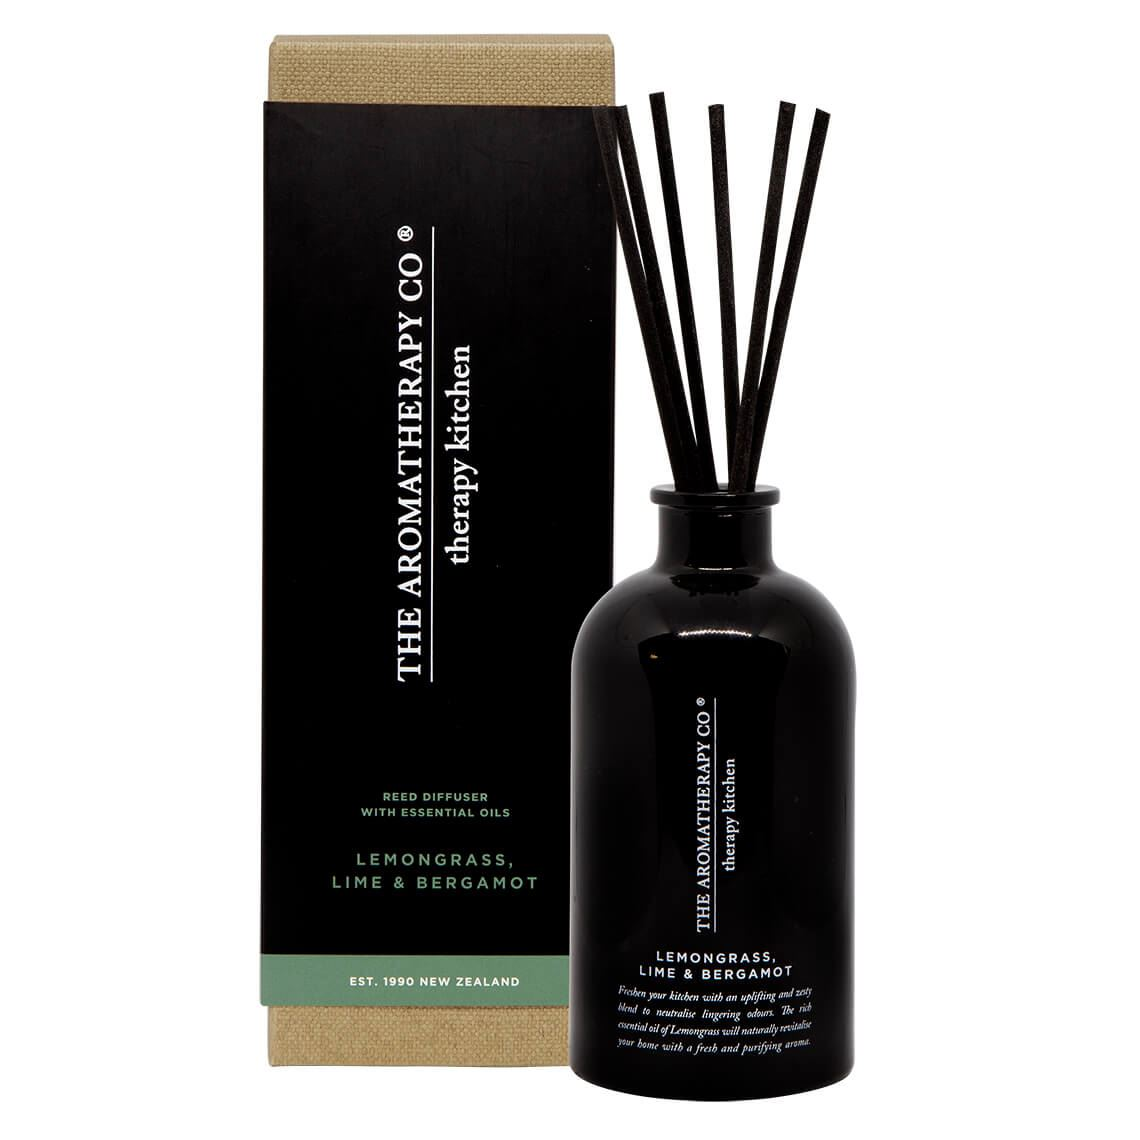 Therapy Kitchen Diffuser Lemongrass Lime And Bergamot Size 250 ml in Lemongrass Lime/Bergamot Freedom